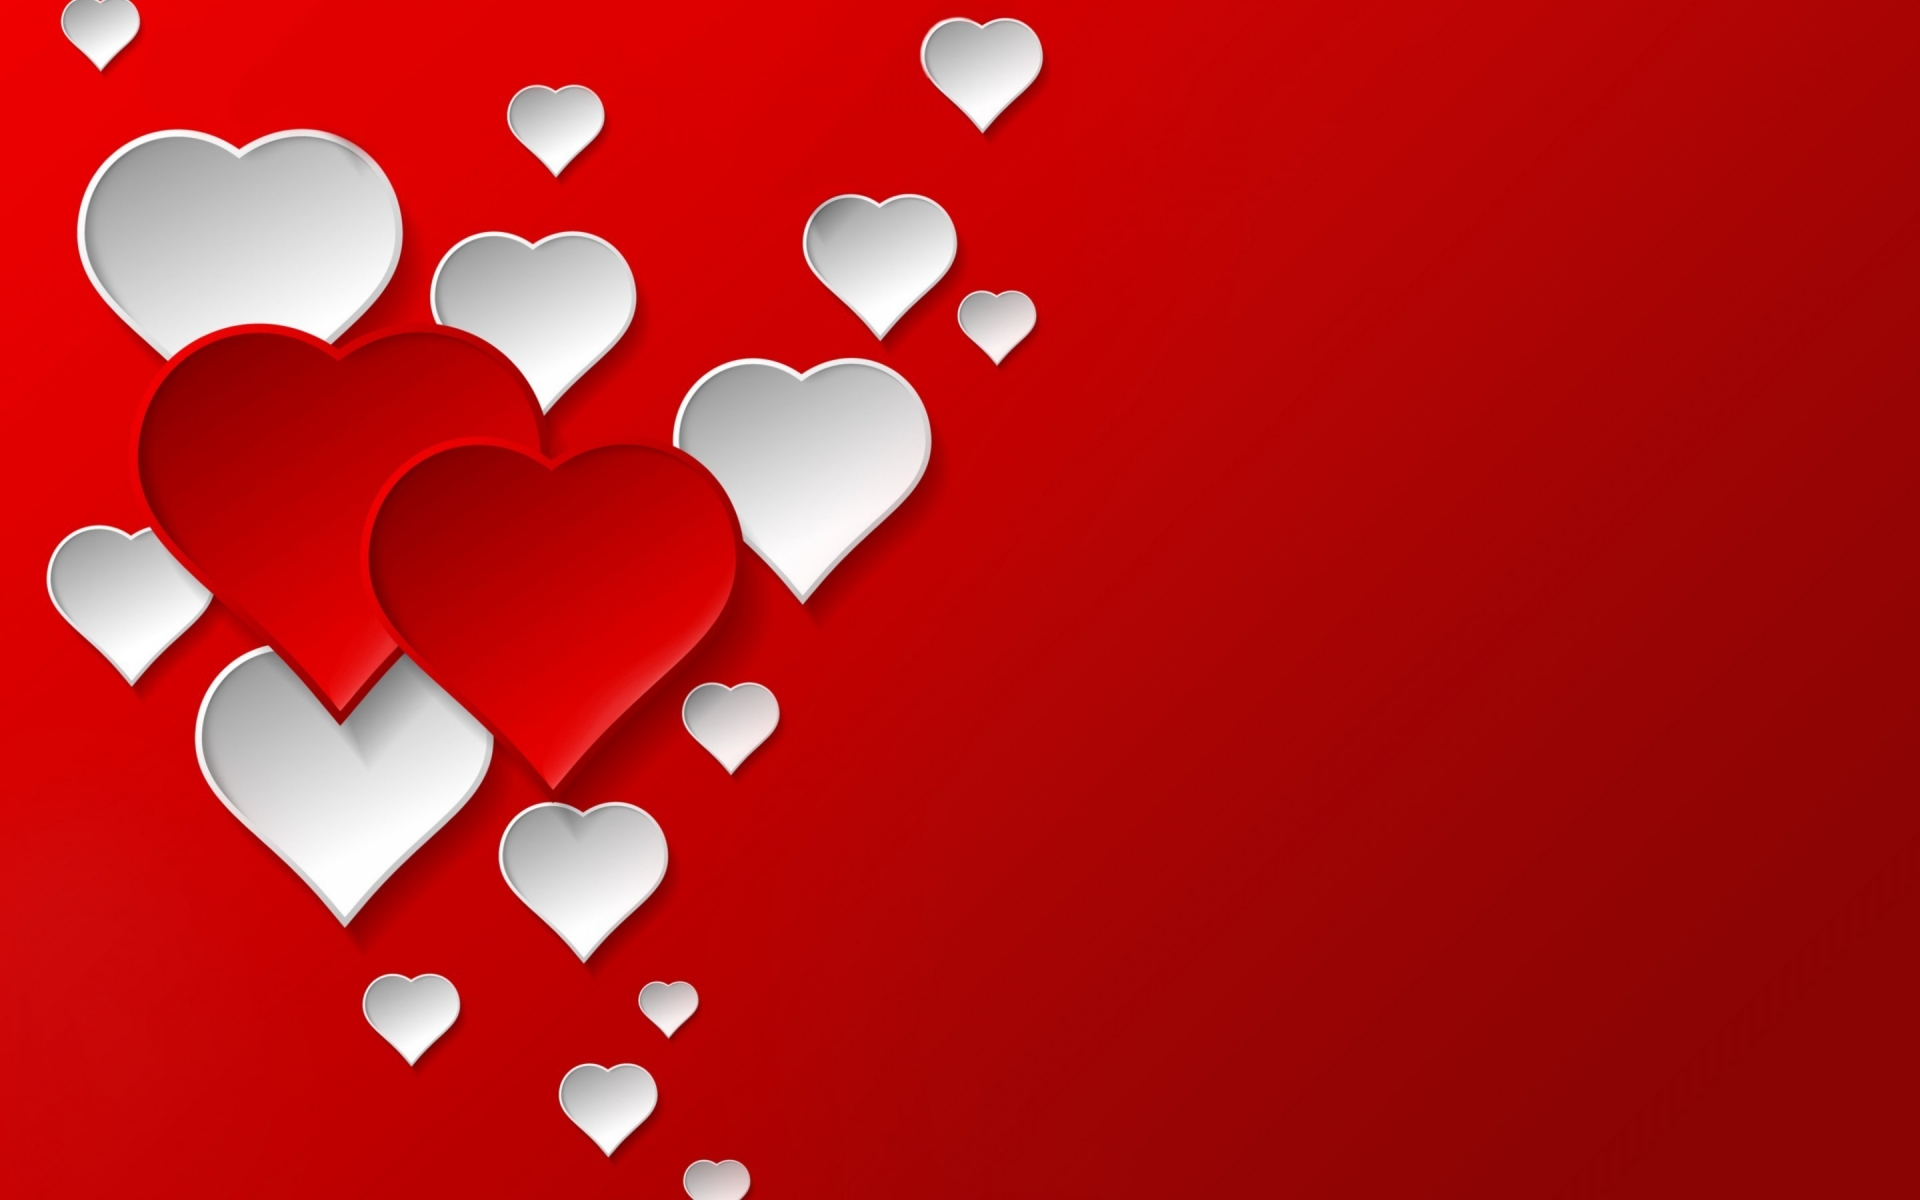 Digital Hearts for 1920 x 1200 widescreen resolution